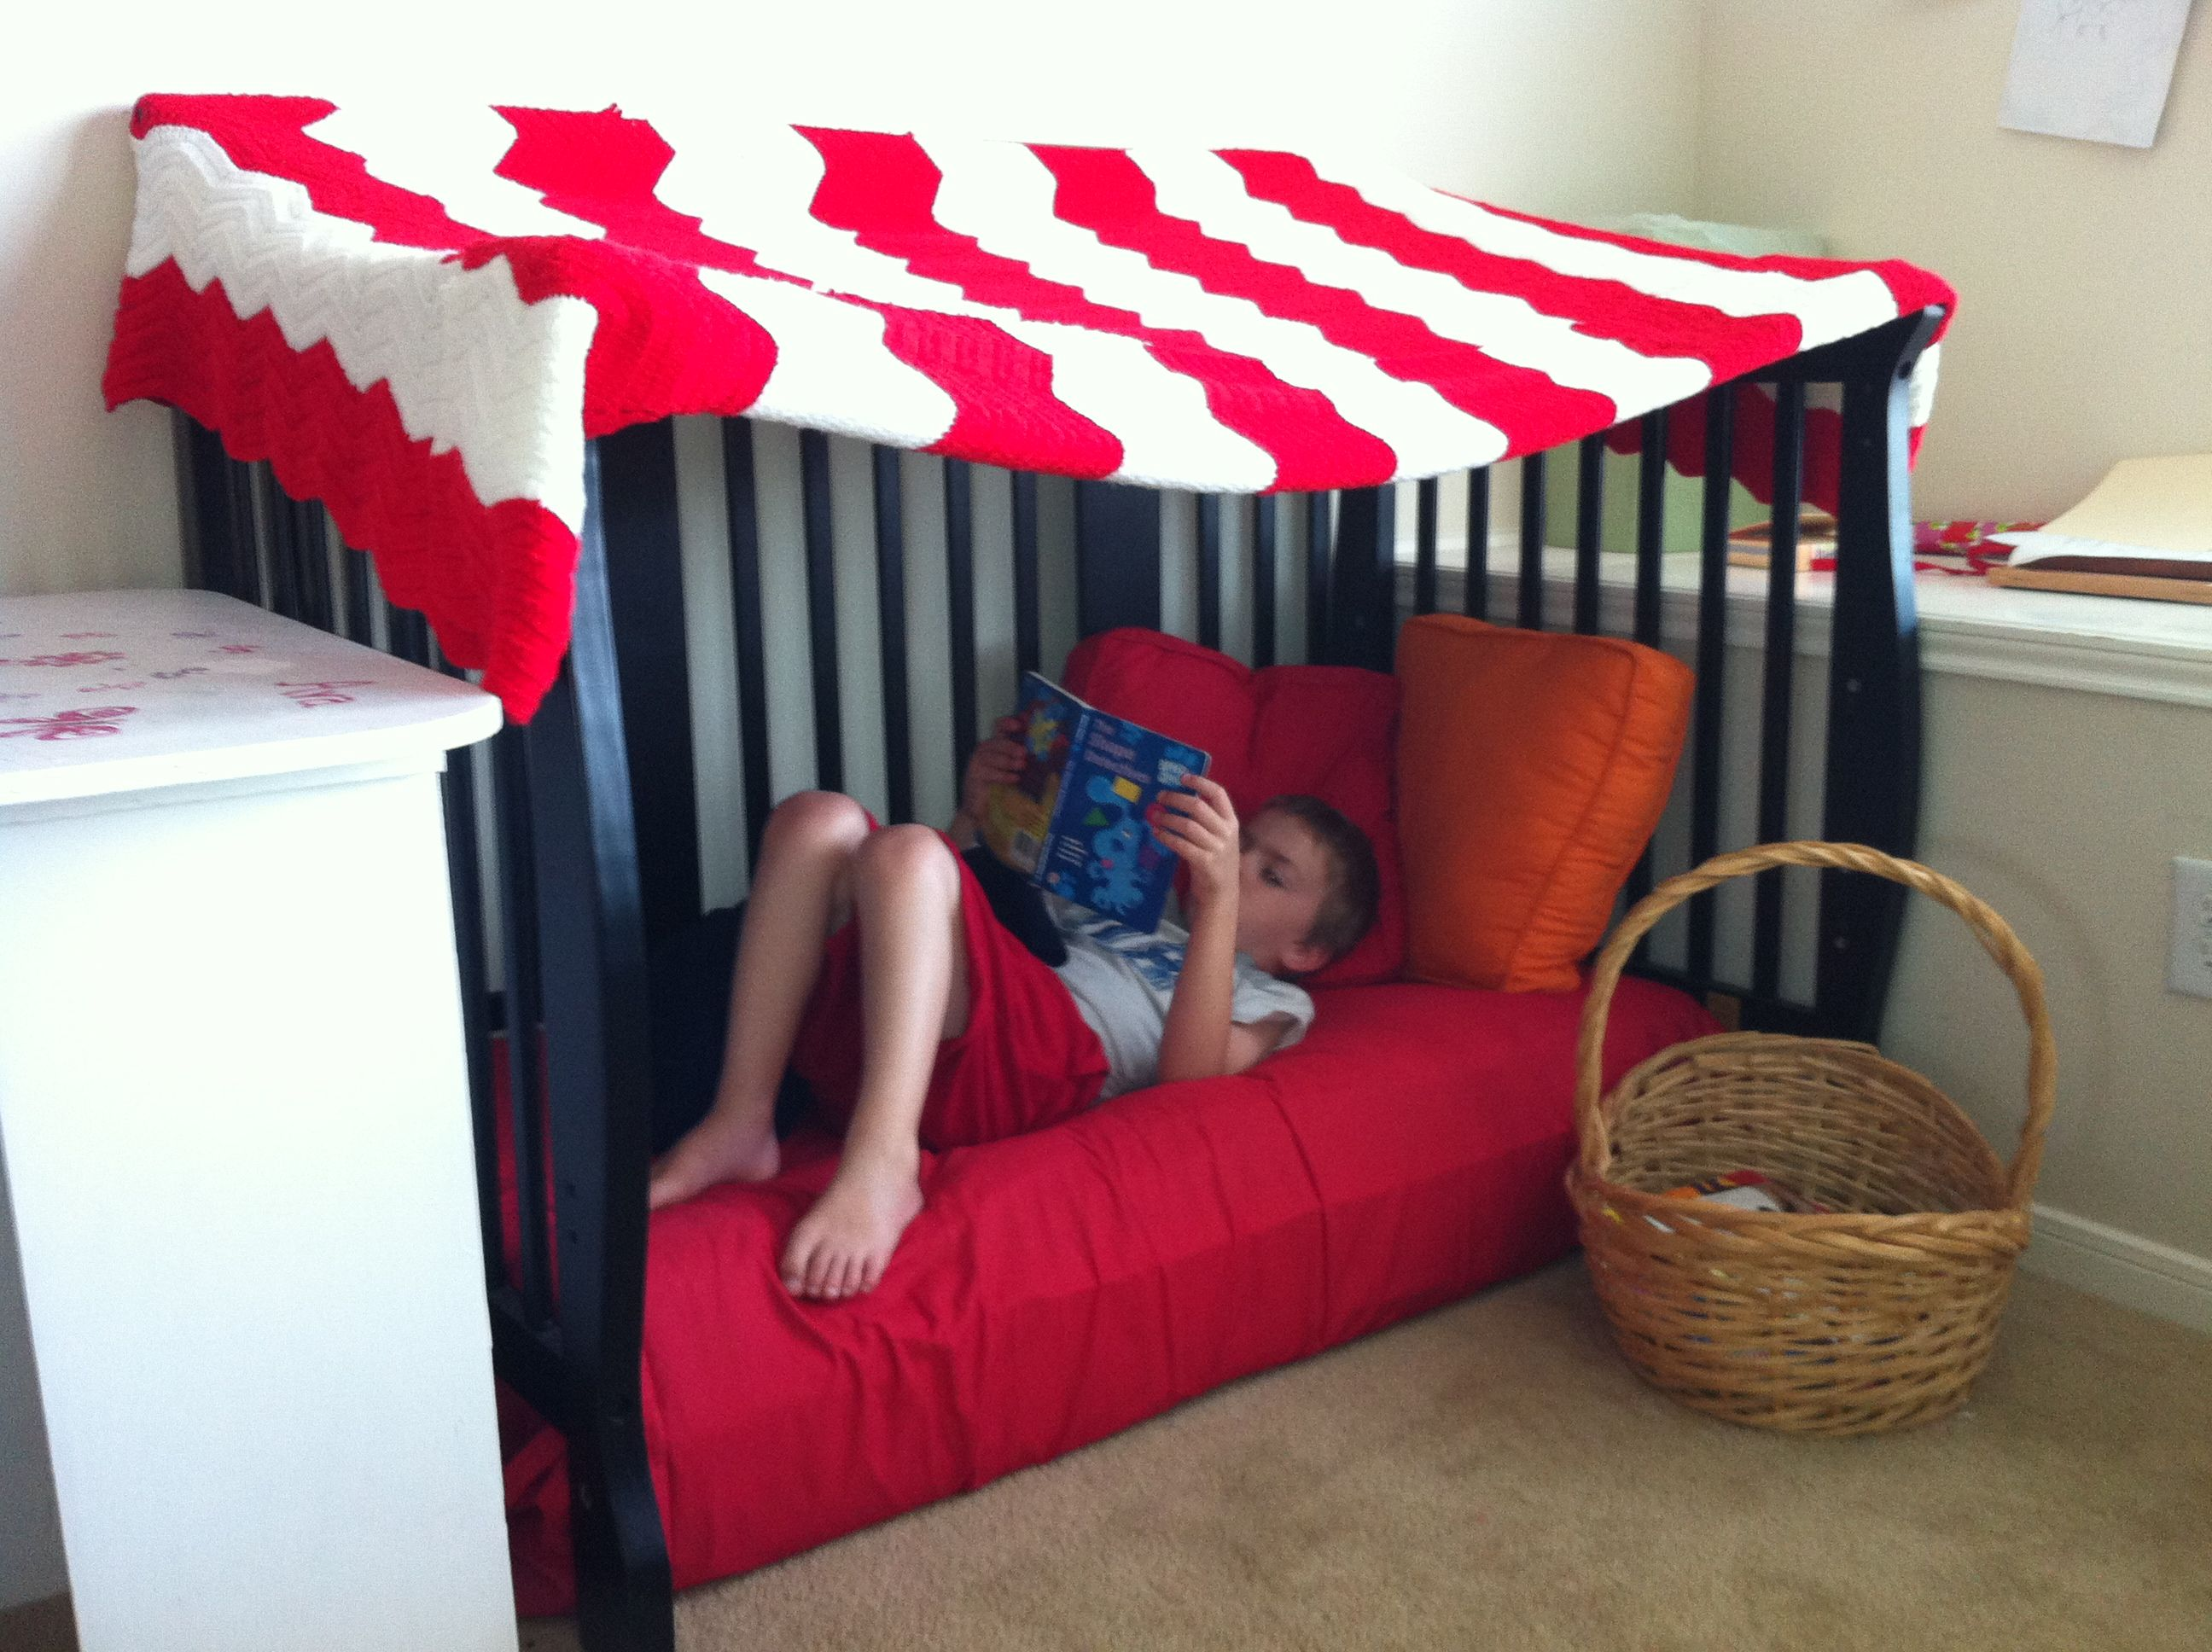 Kids playroom canopy - Kids Reading Nook Reading Area Repurposed Baby Bed With Afghan Canopy Tied On With